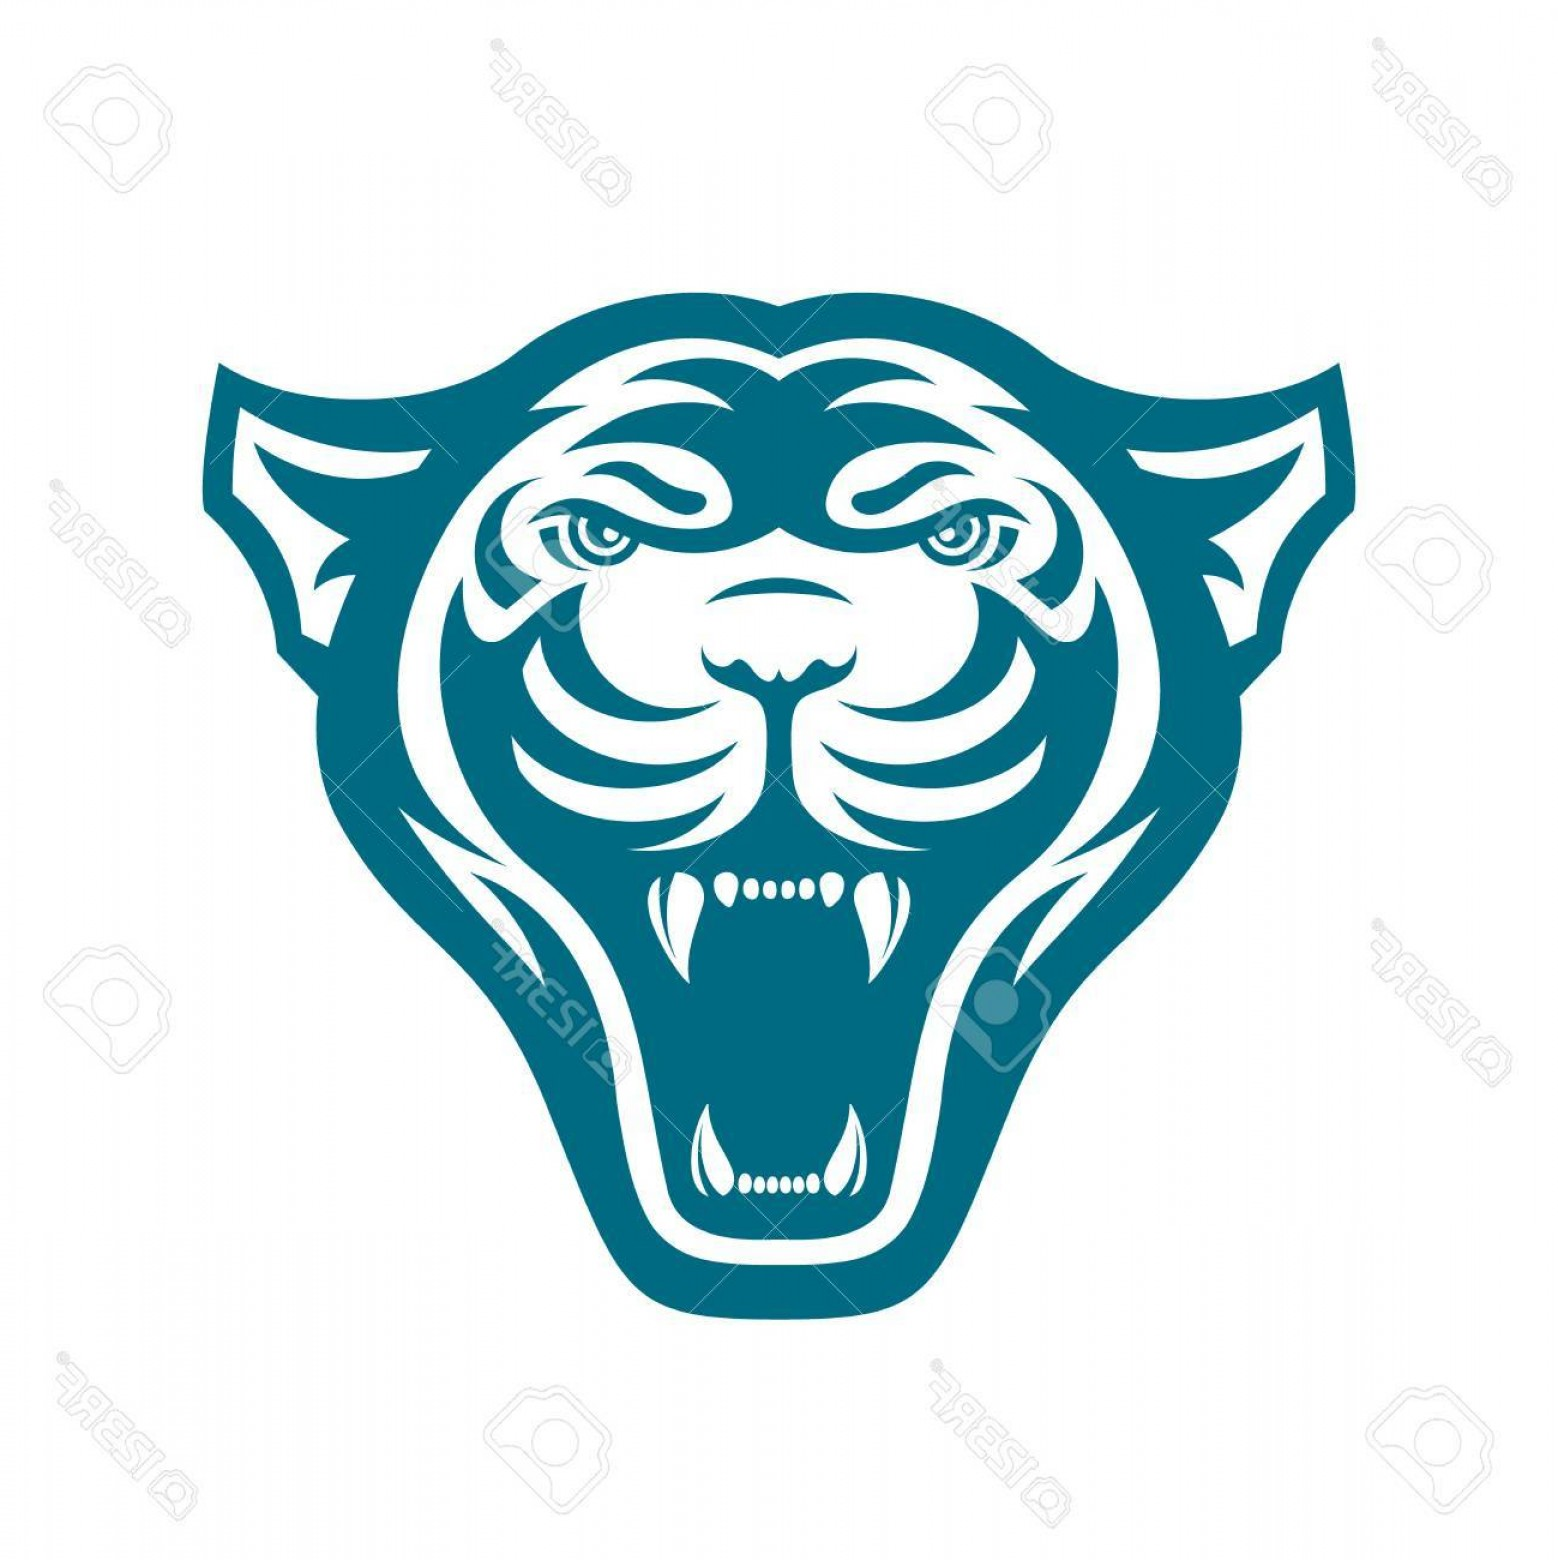 Vector Panther Football: Photostock Vector Panthers Head Logo For Sport Club Or Team Animal Mascot Logotype Template Vector Illustration Flat S